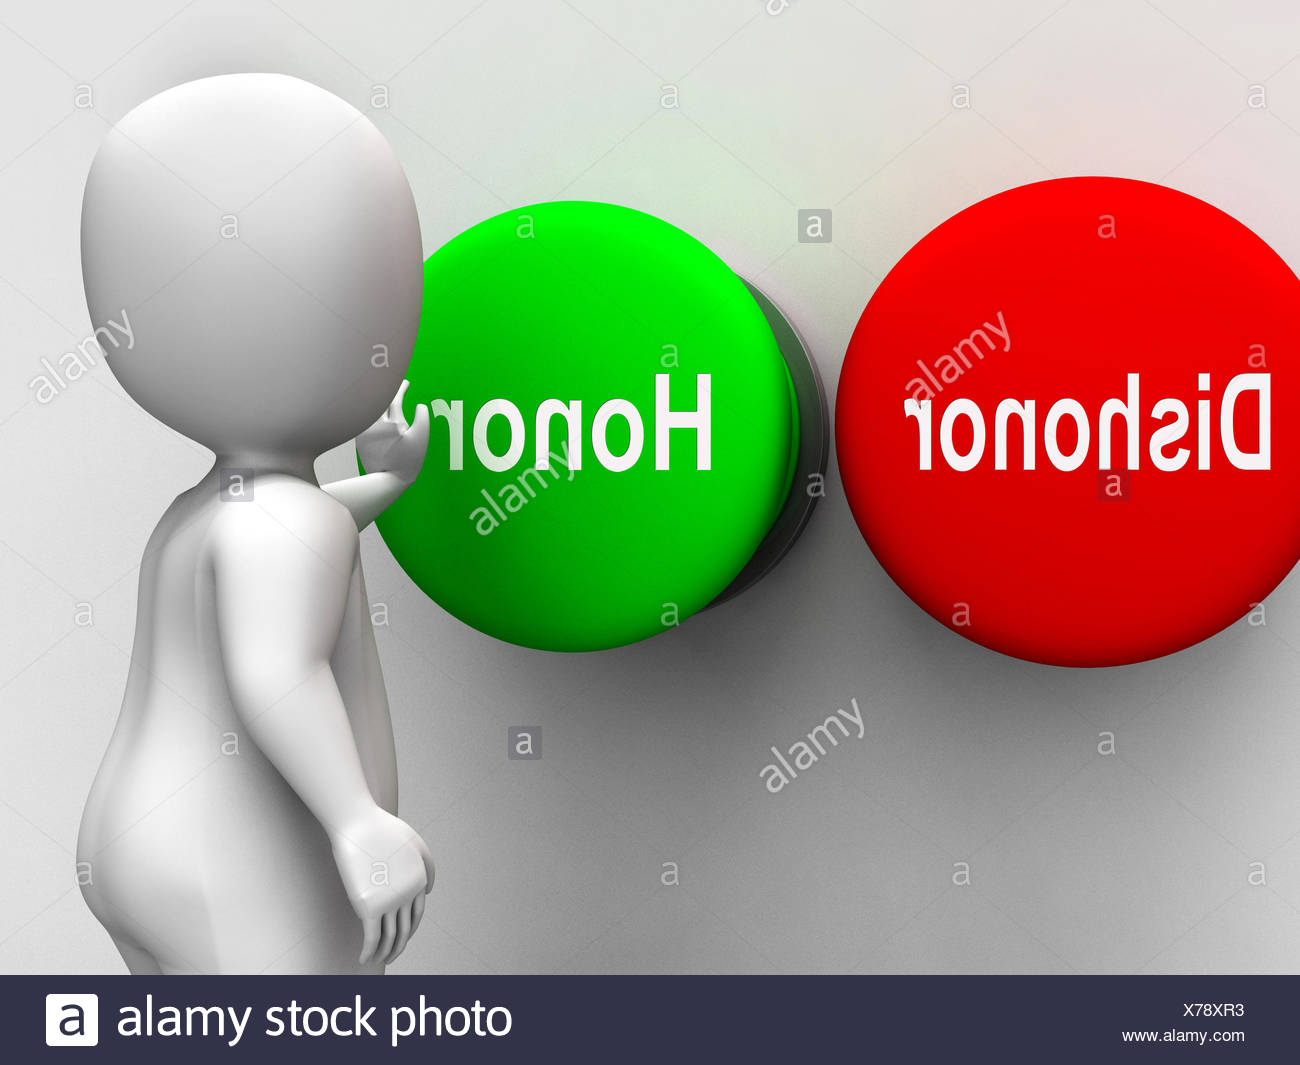 dishonor honor buttons shows integrity and morals stock photo